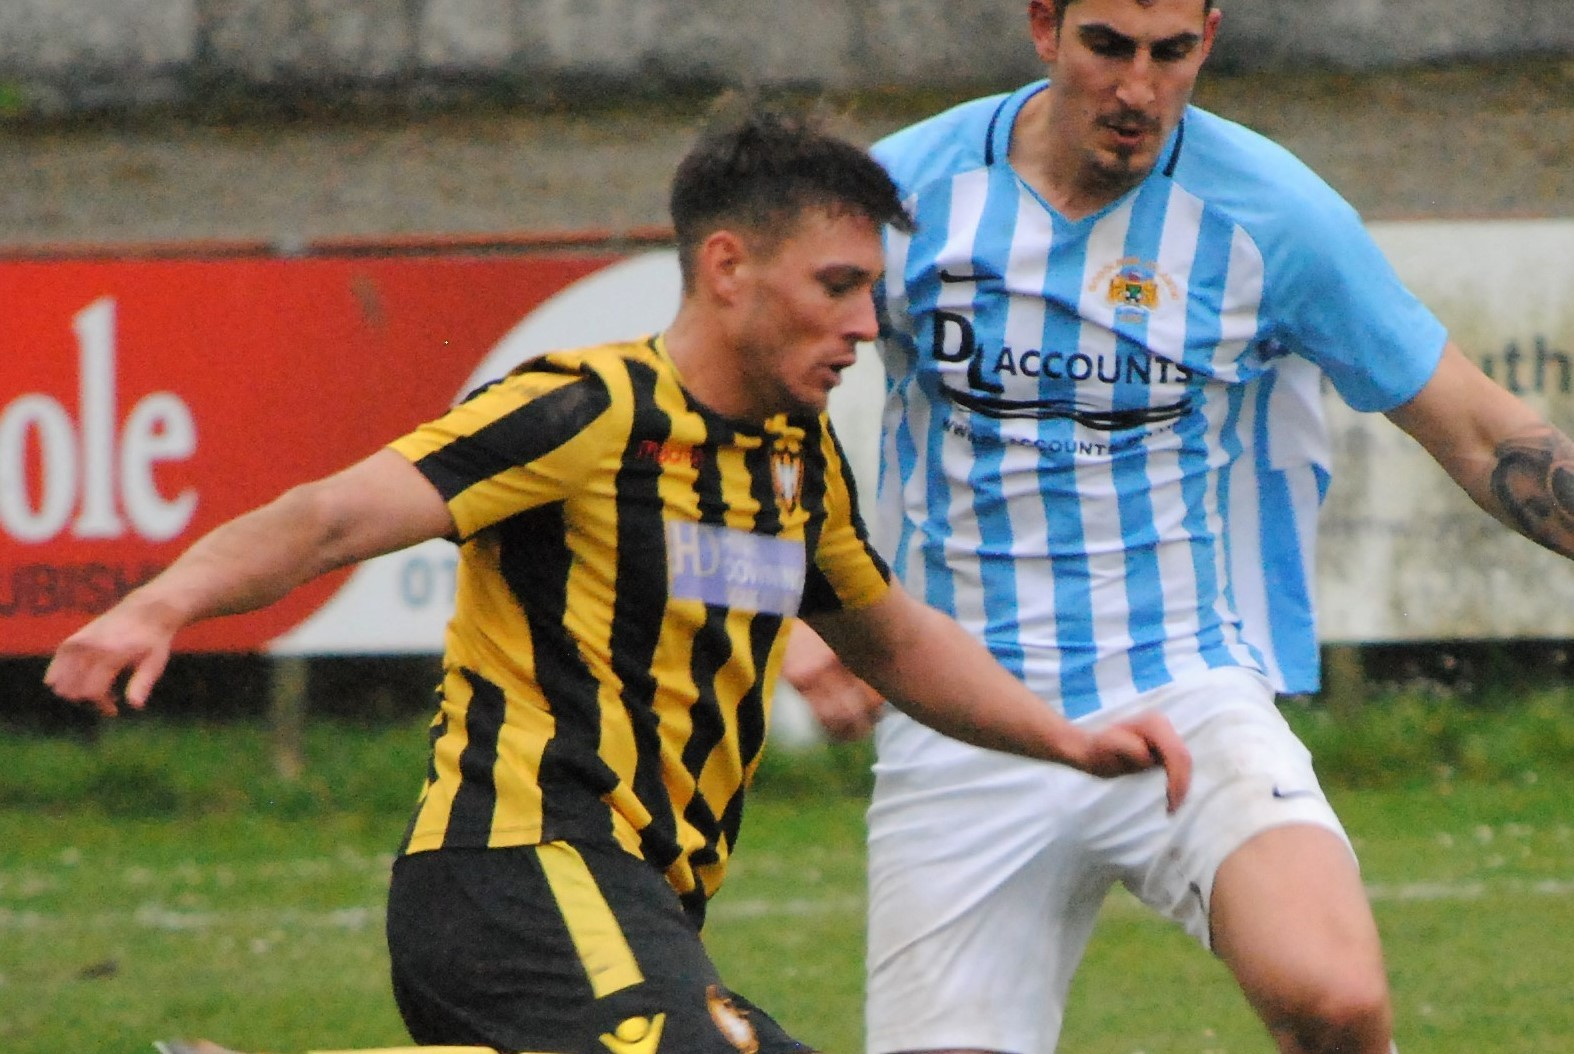 Luke Brabyn scored twice and assisted another in Falmouth Town's 3-1 win at home to Godolphin Atlantic on Saturday